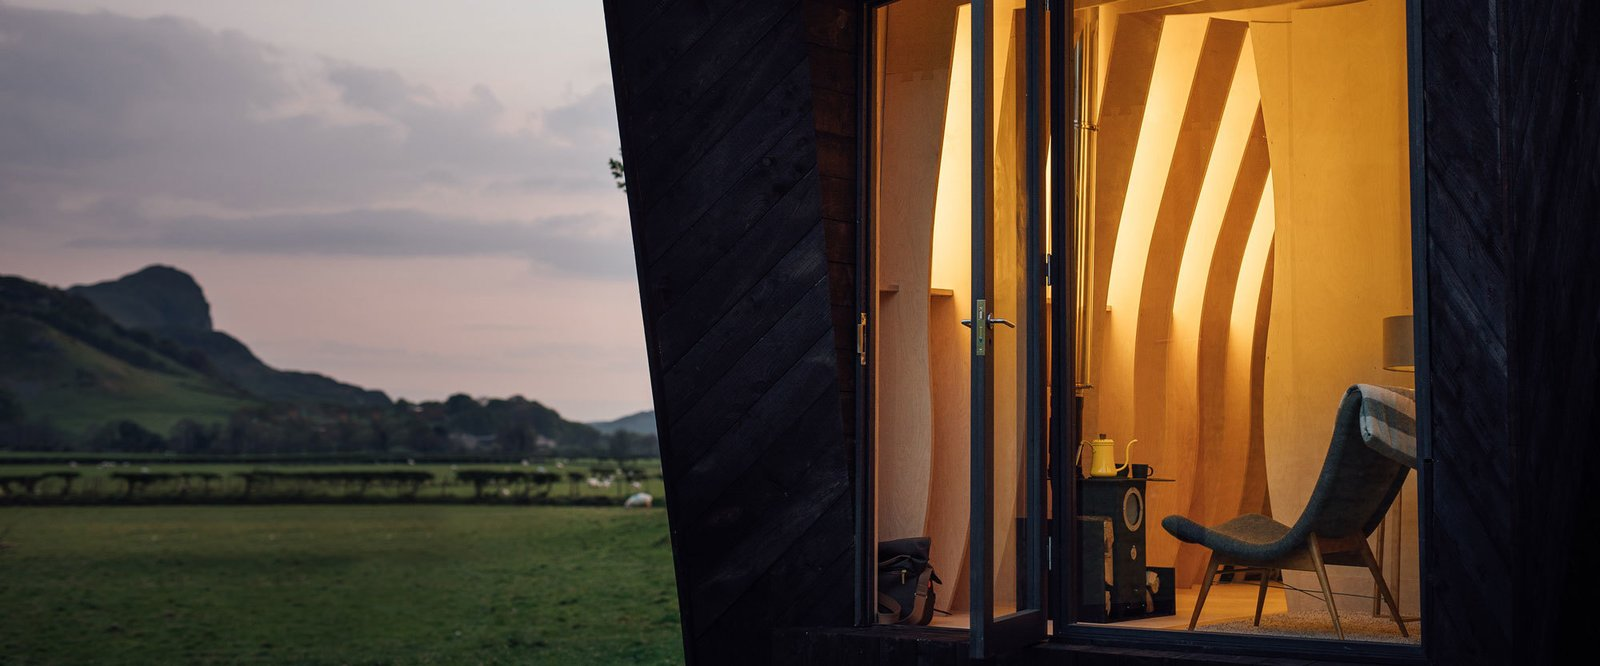 Photo 3 of 11 in Tour One of Epic Retreat's Tiny Pop-Up Hotel Cabins in the Welsh Countryside